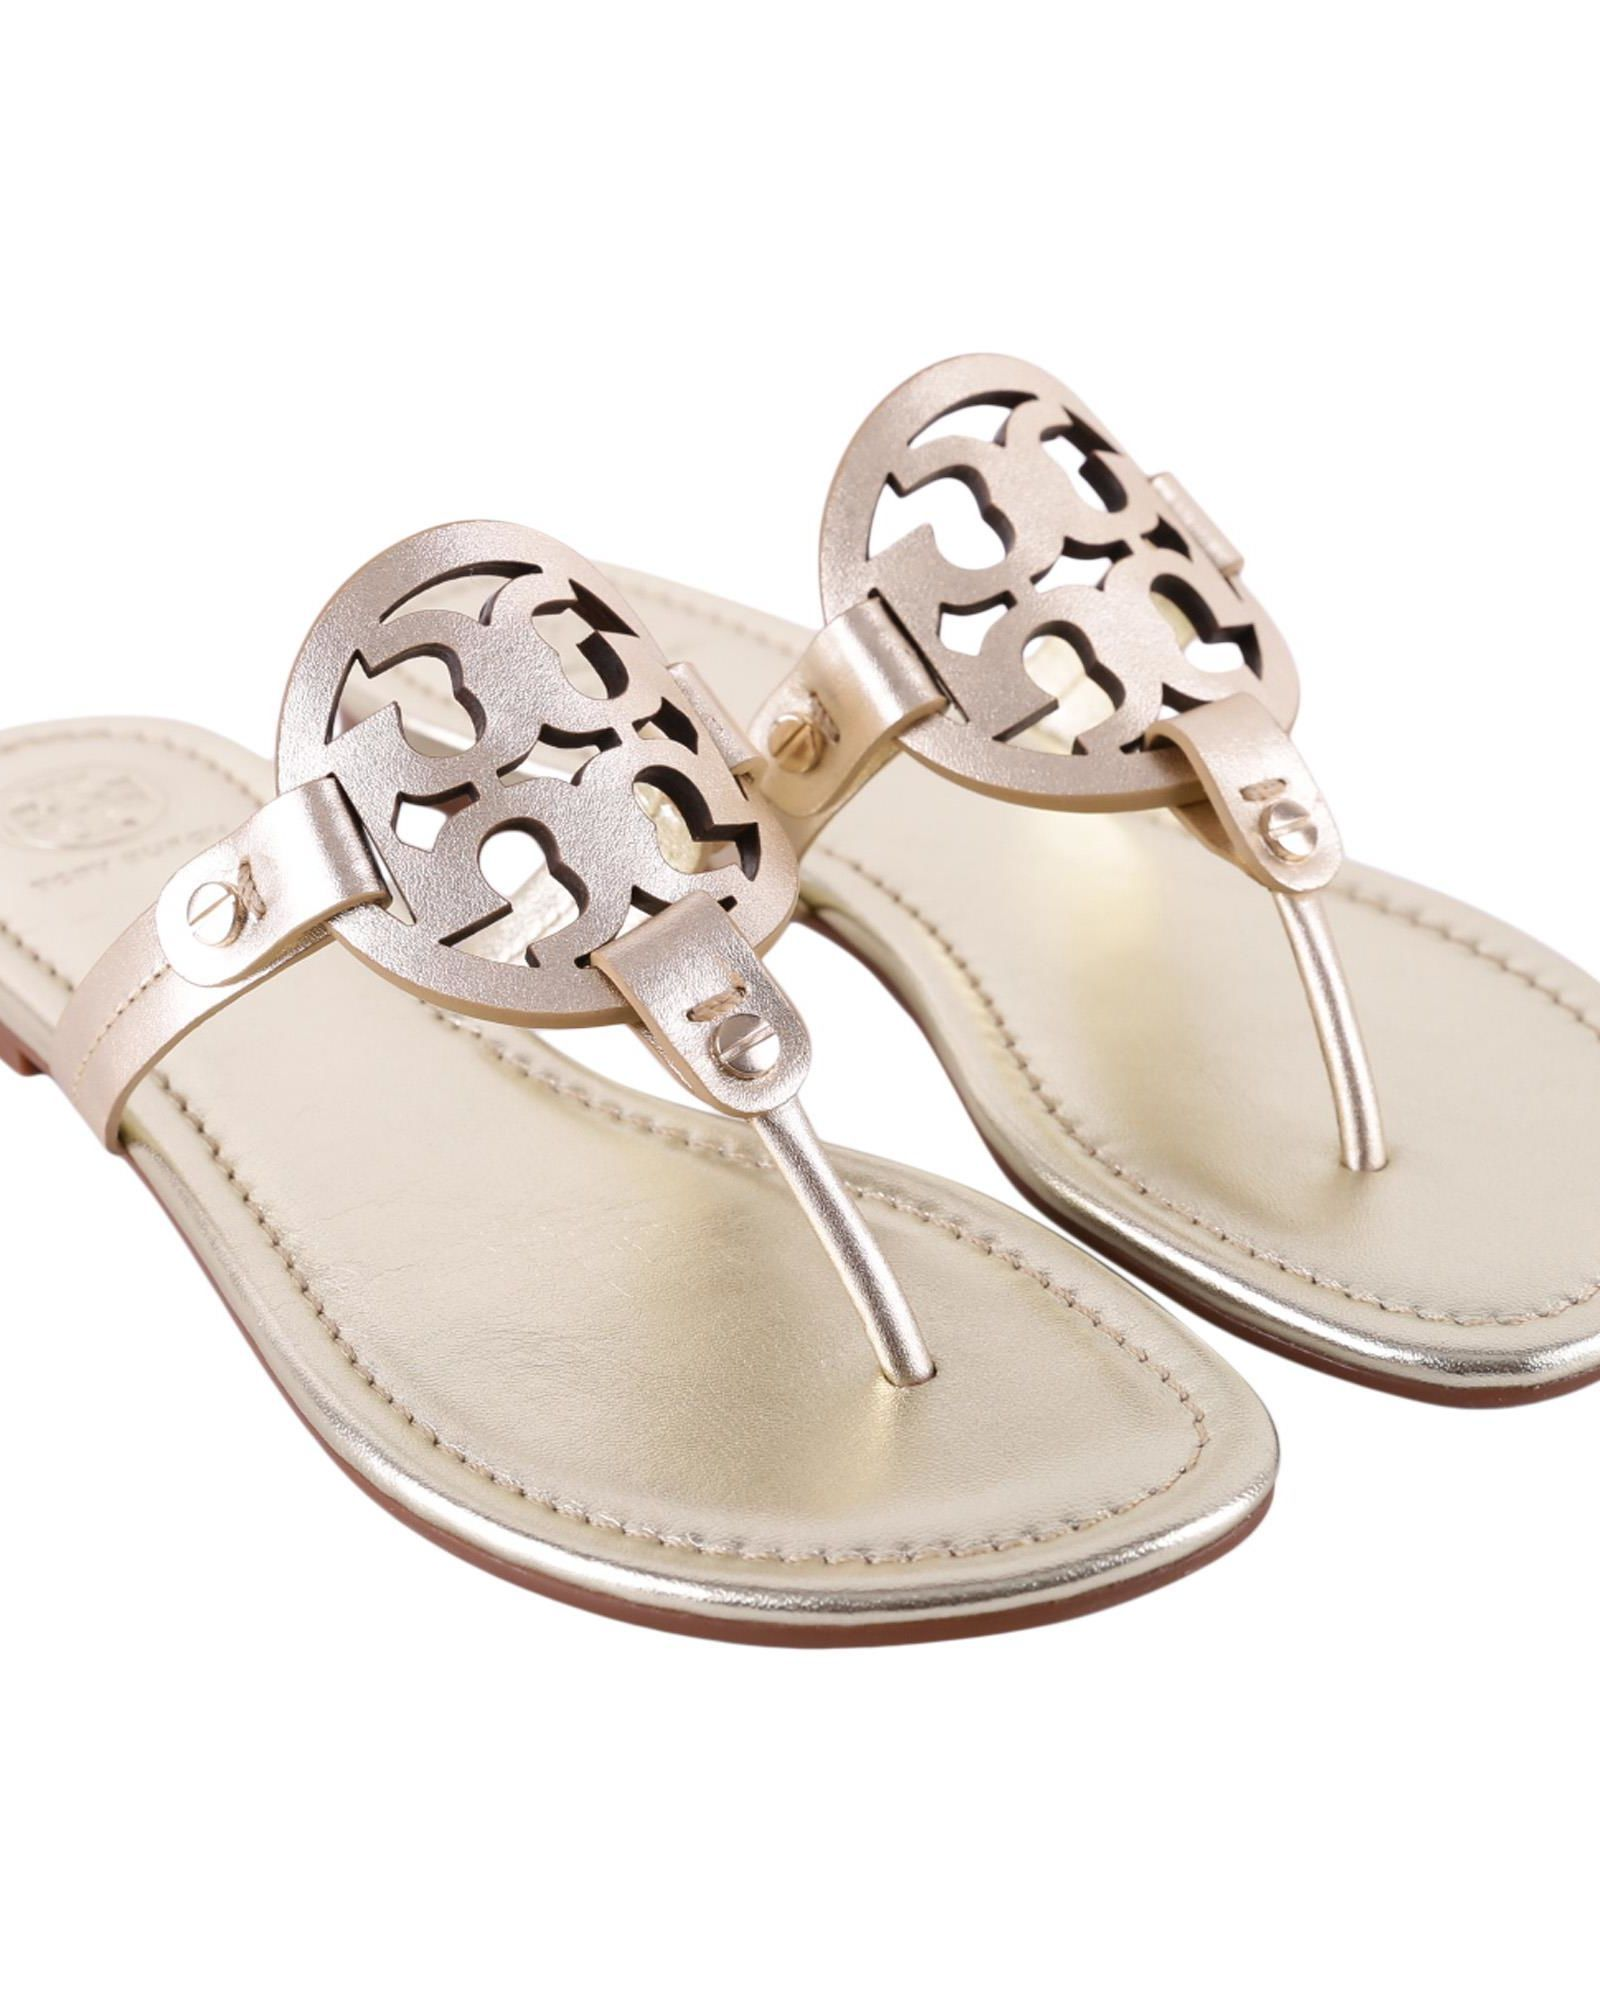 ed392c6ba4939 TORY BURCH MILLER METALLIC LEATHER SANDALS.  toryburch  shoes ...